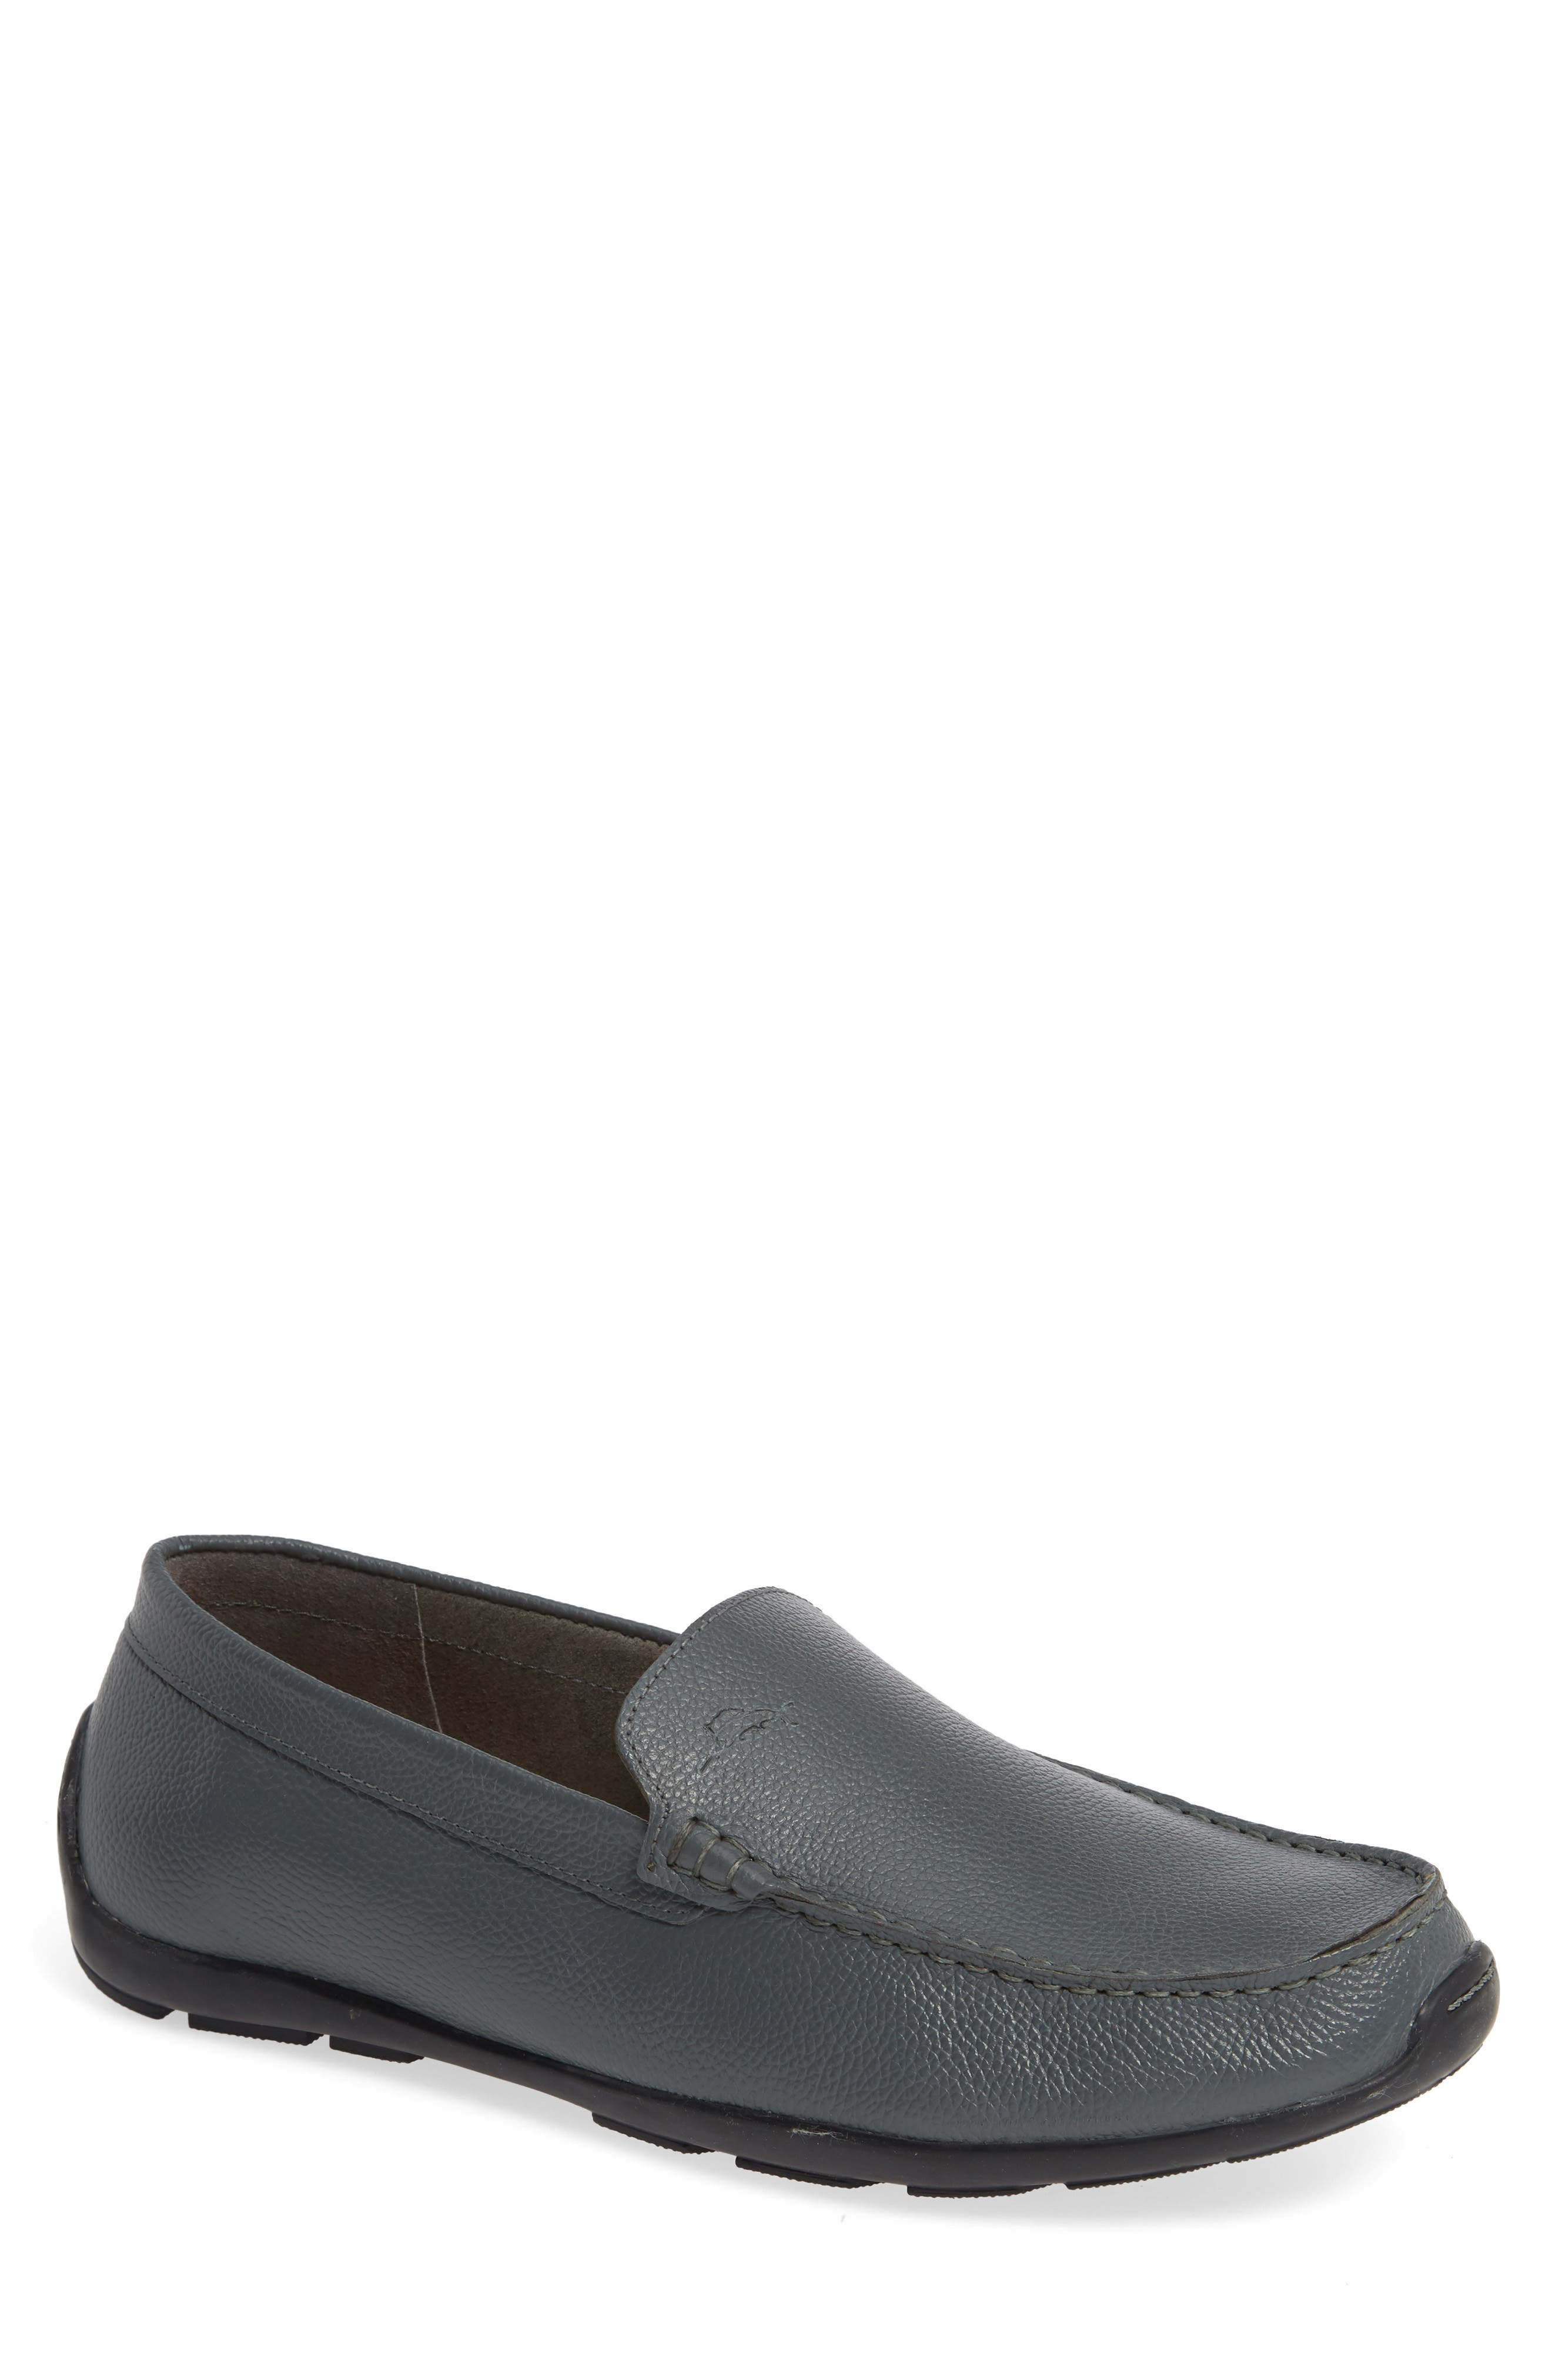 Orion Venetian Loafer,                         Main,                         color, GREY TUMBLED LEATHER